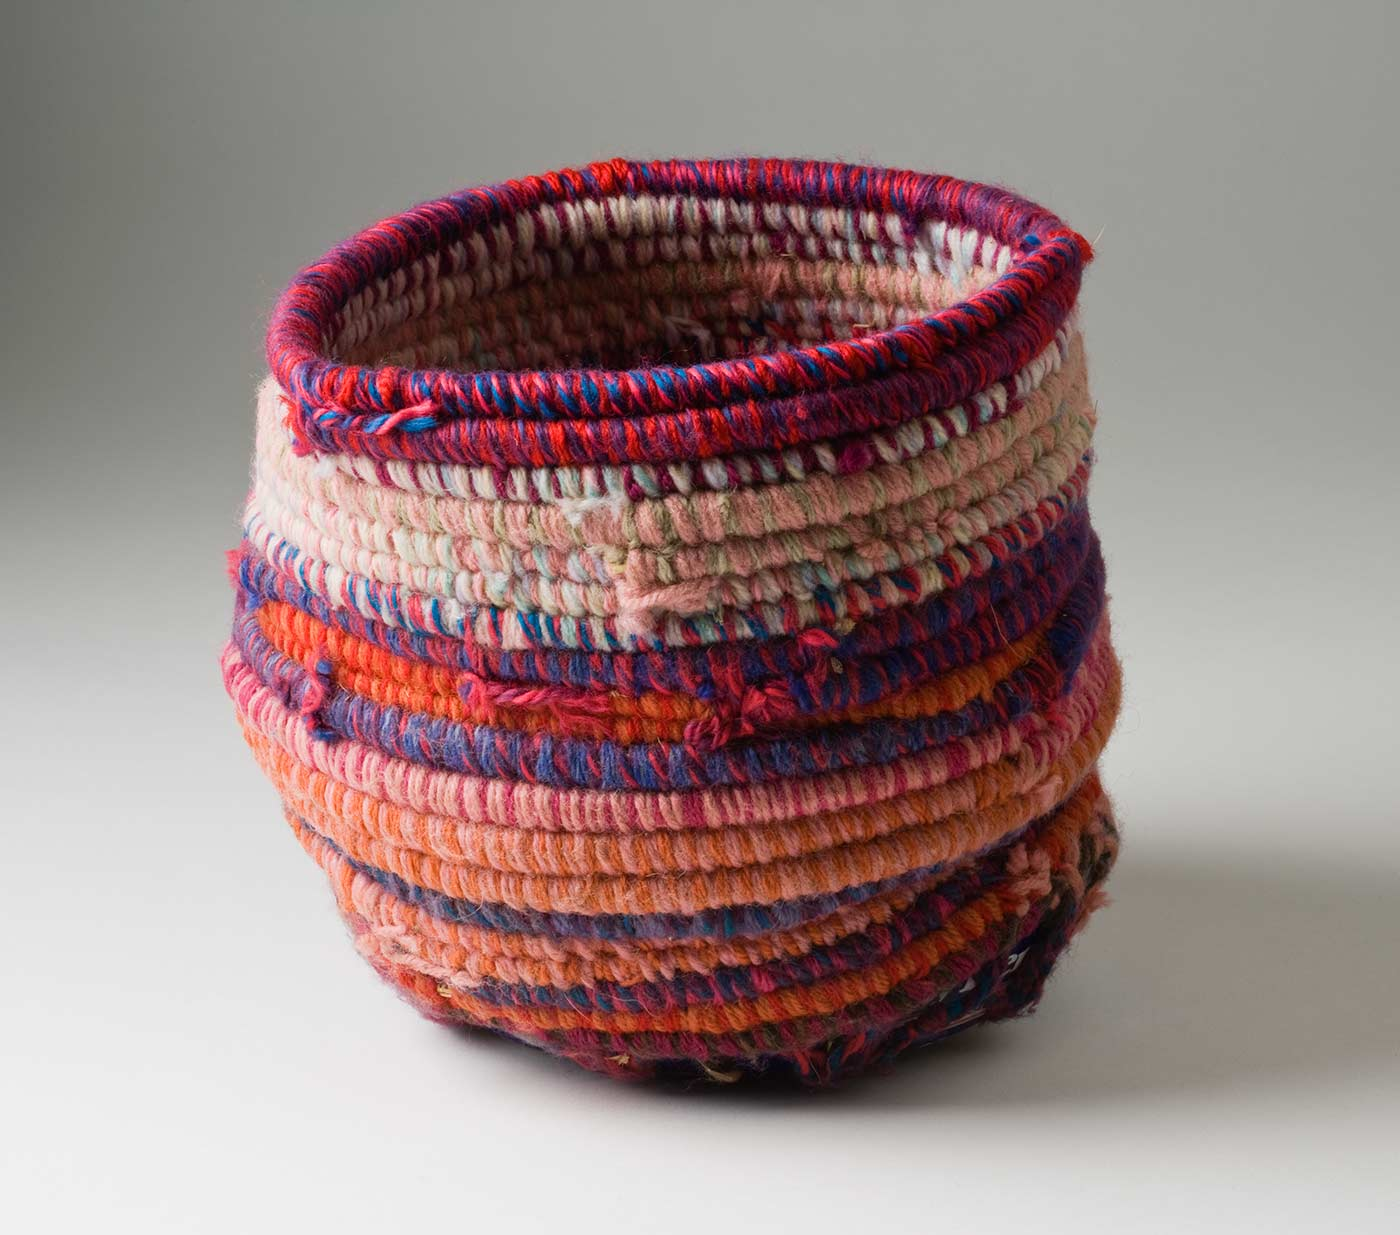 A cylindrical coiled multicoloured yarn and plant fibre basket with a metal base. The light and dark pink coiled yarn is mixed with colours of blue, orange, red and purple. The base of the basket is a blue and white coloured metal tin with burn marks to the bottom. Yarn is used to attach the base to the top section through holes that have been punched in the tin. - click to view larger image